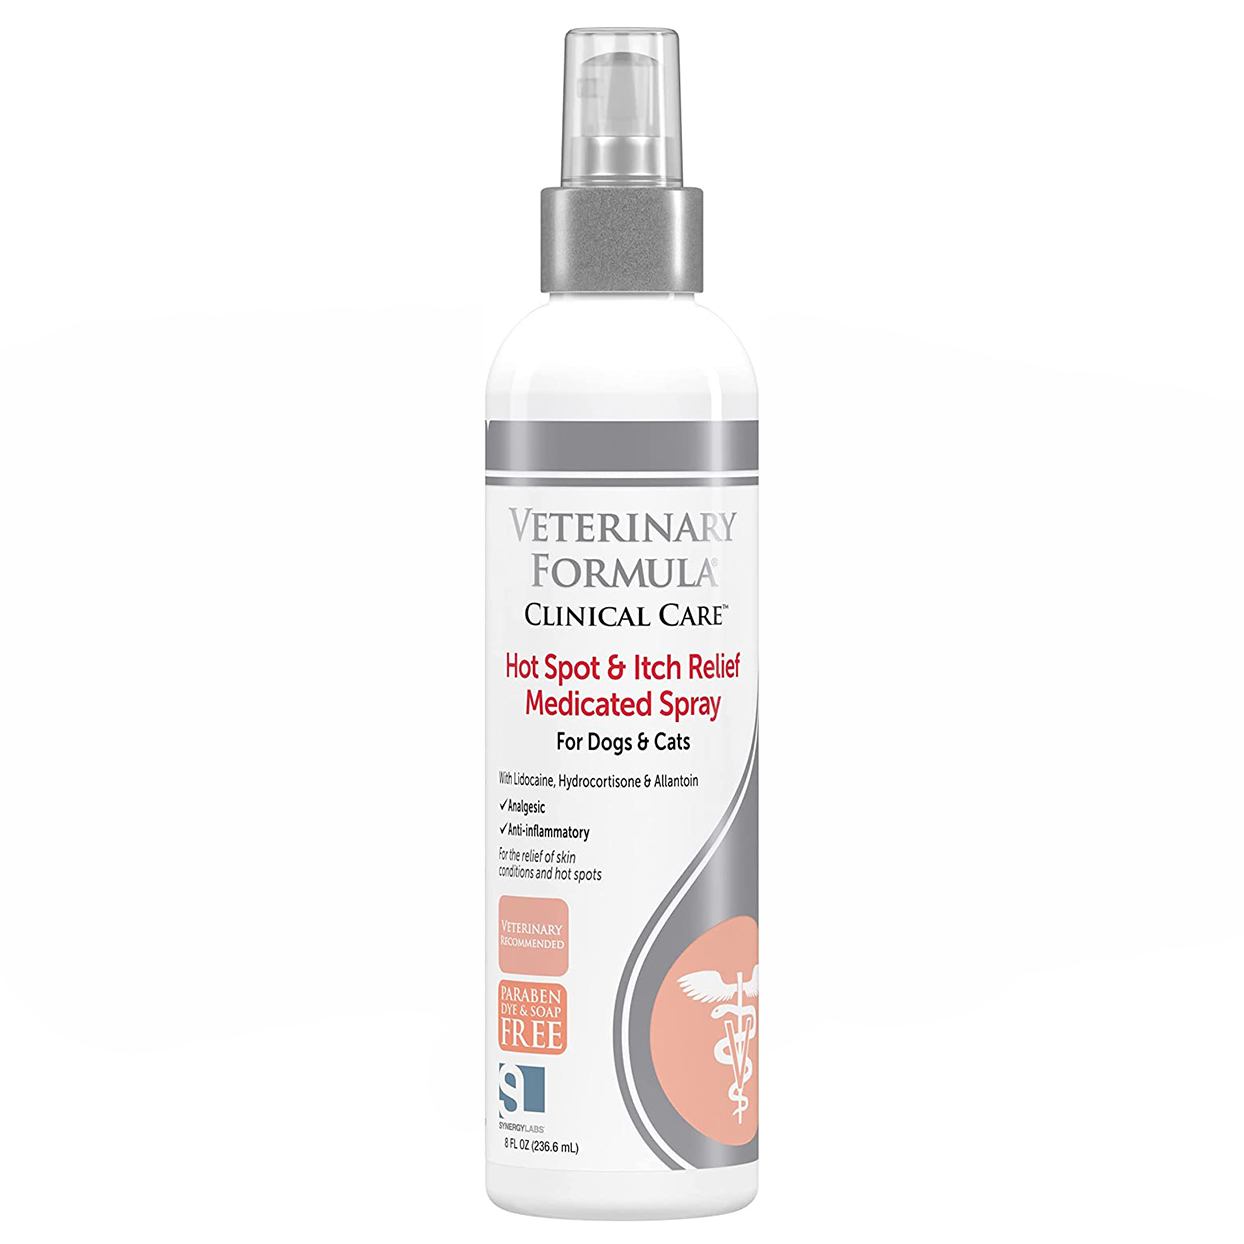 Veterinary Formula Clinical Care Hot Spot and Itch Relief Medicated Spray